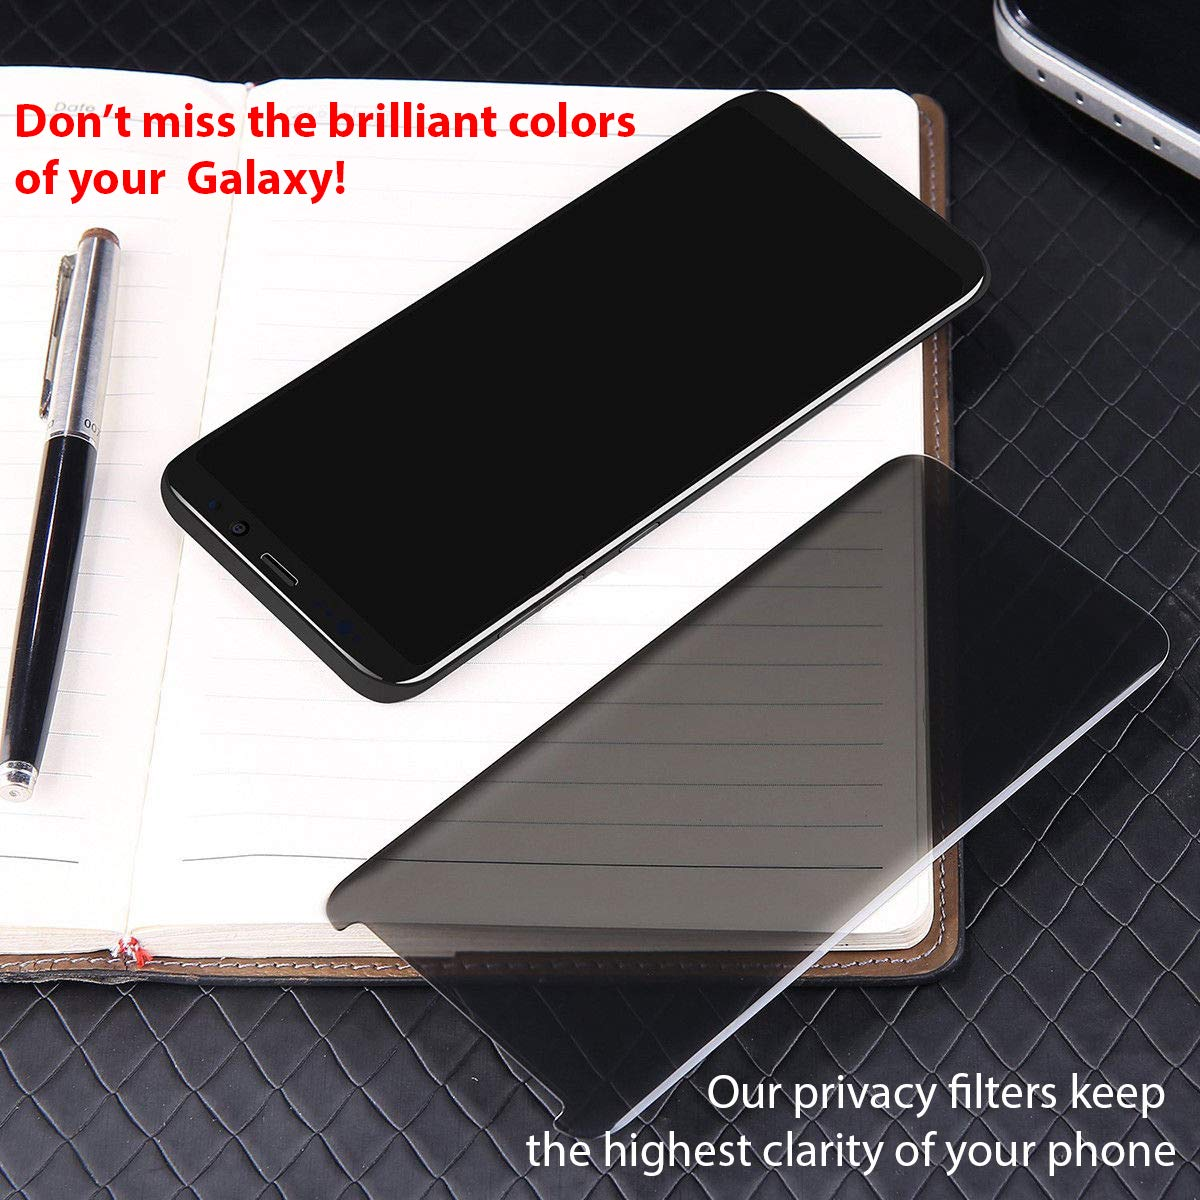 samsung note 8 privacy protection